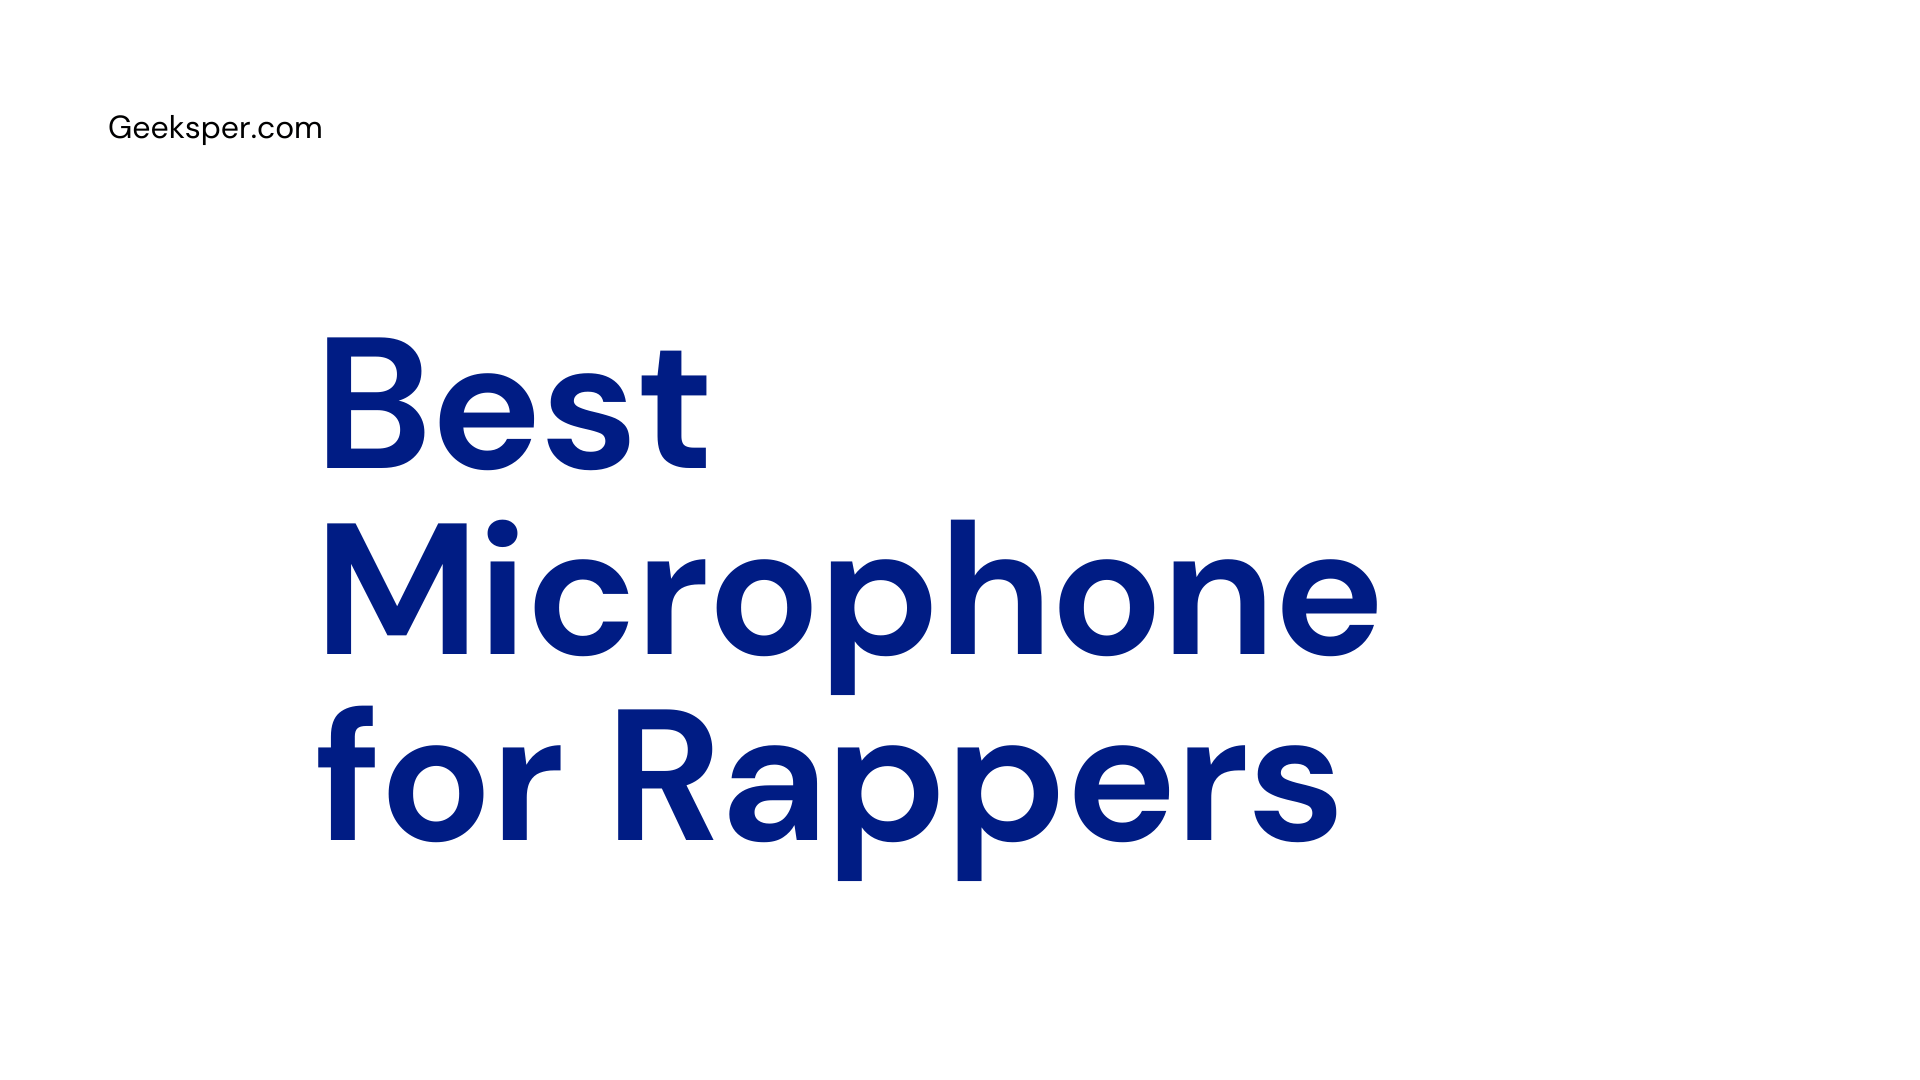 Top 5 Best Microphone for Rappers in 2021